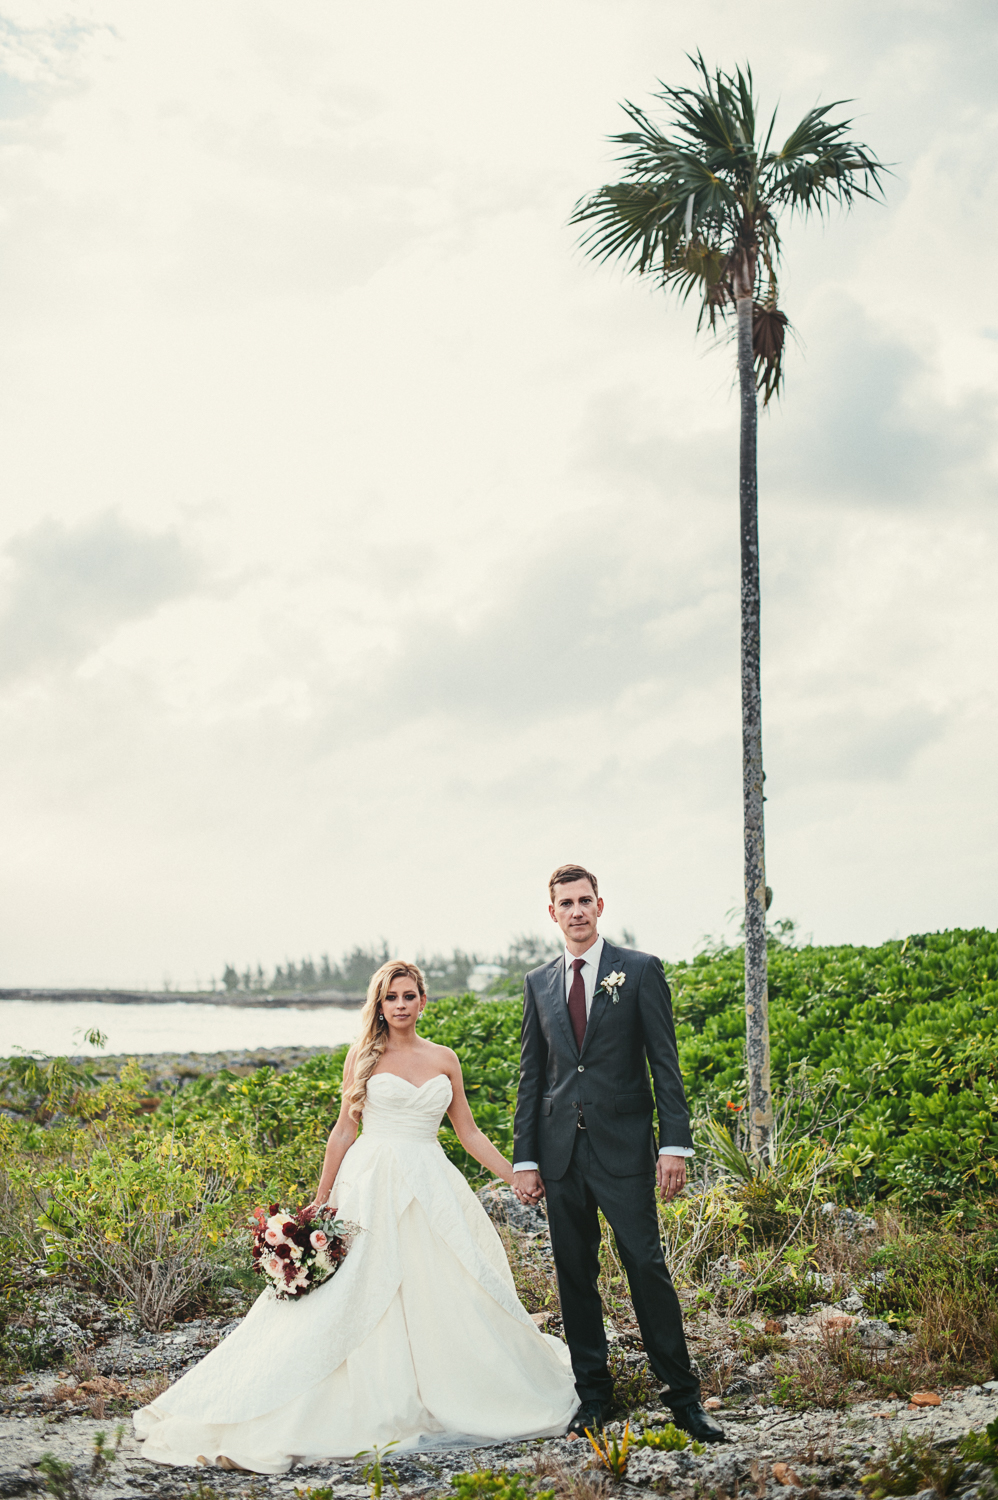 Cayman-Wedding-47.jpg